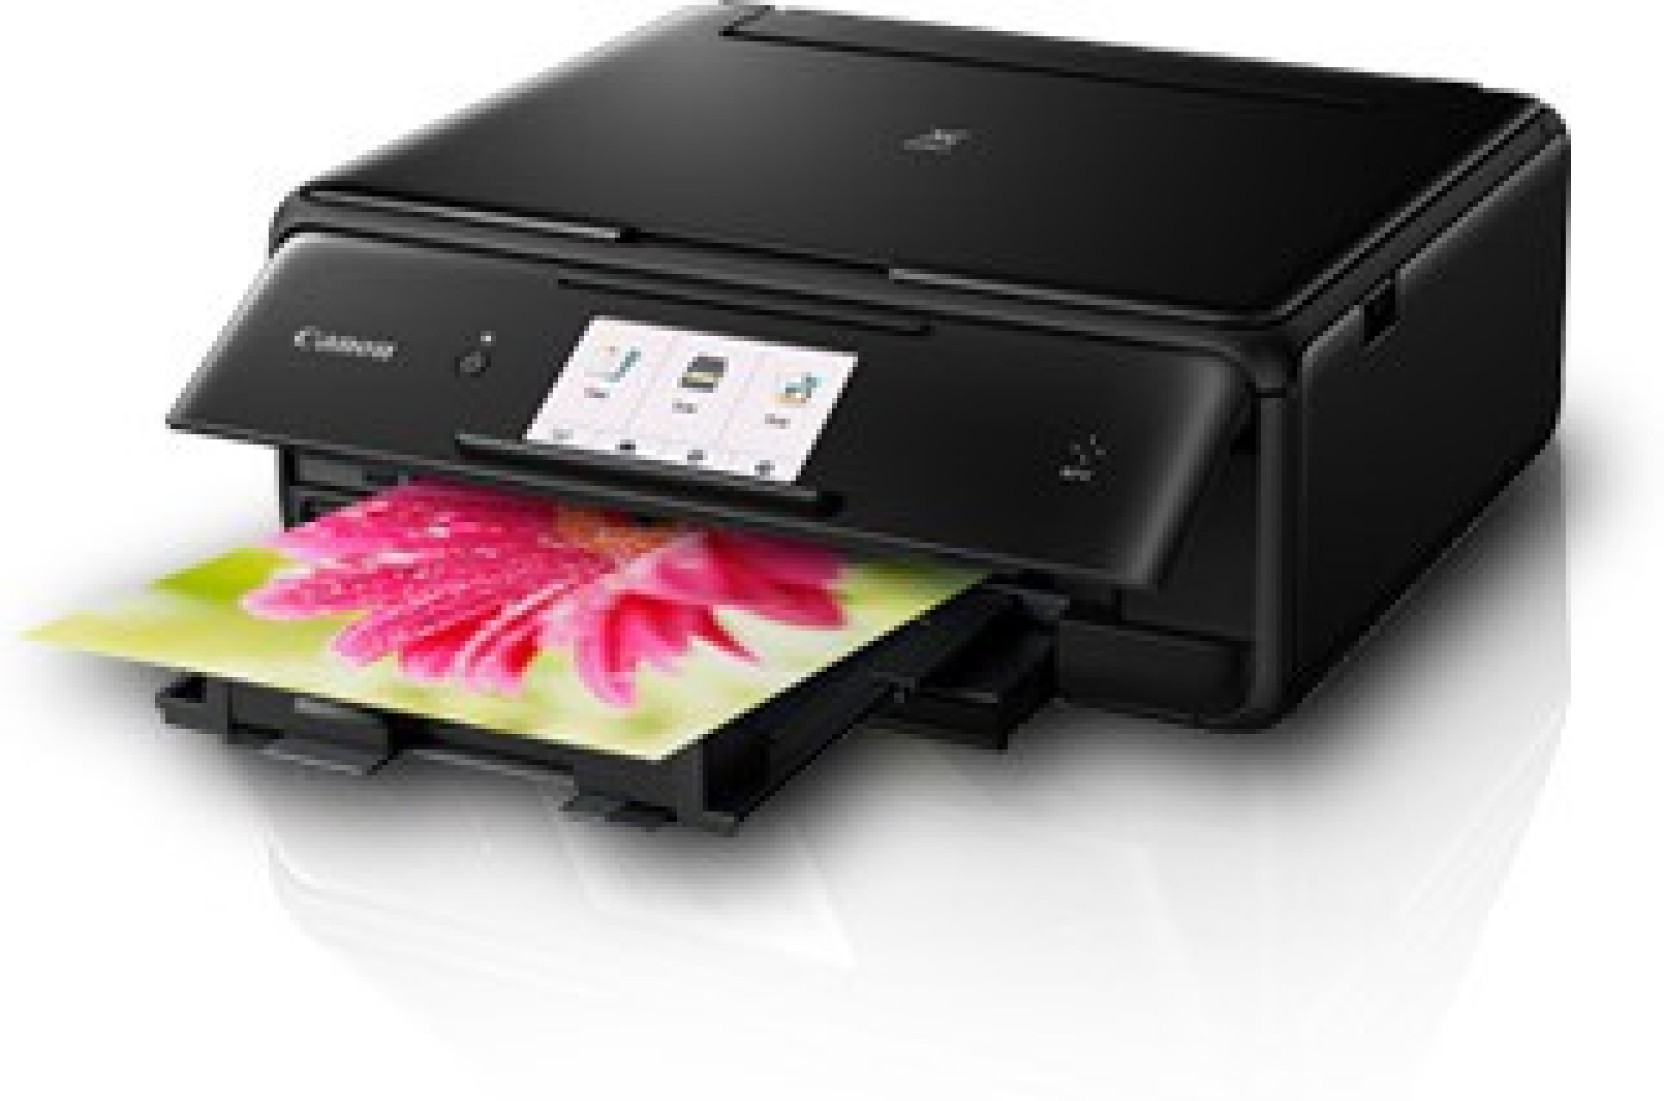 Canon Pixma Ts8070 Multi Function Wireless Printer Print Head G1000 G2000 G3000 Color Original Home